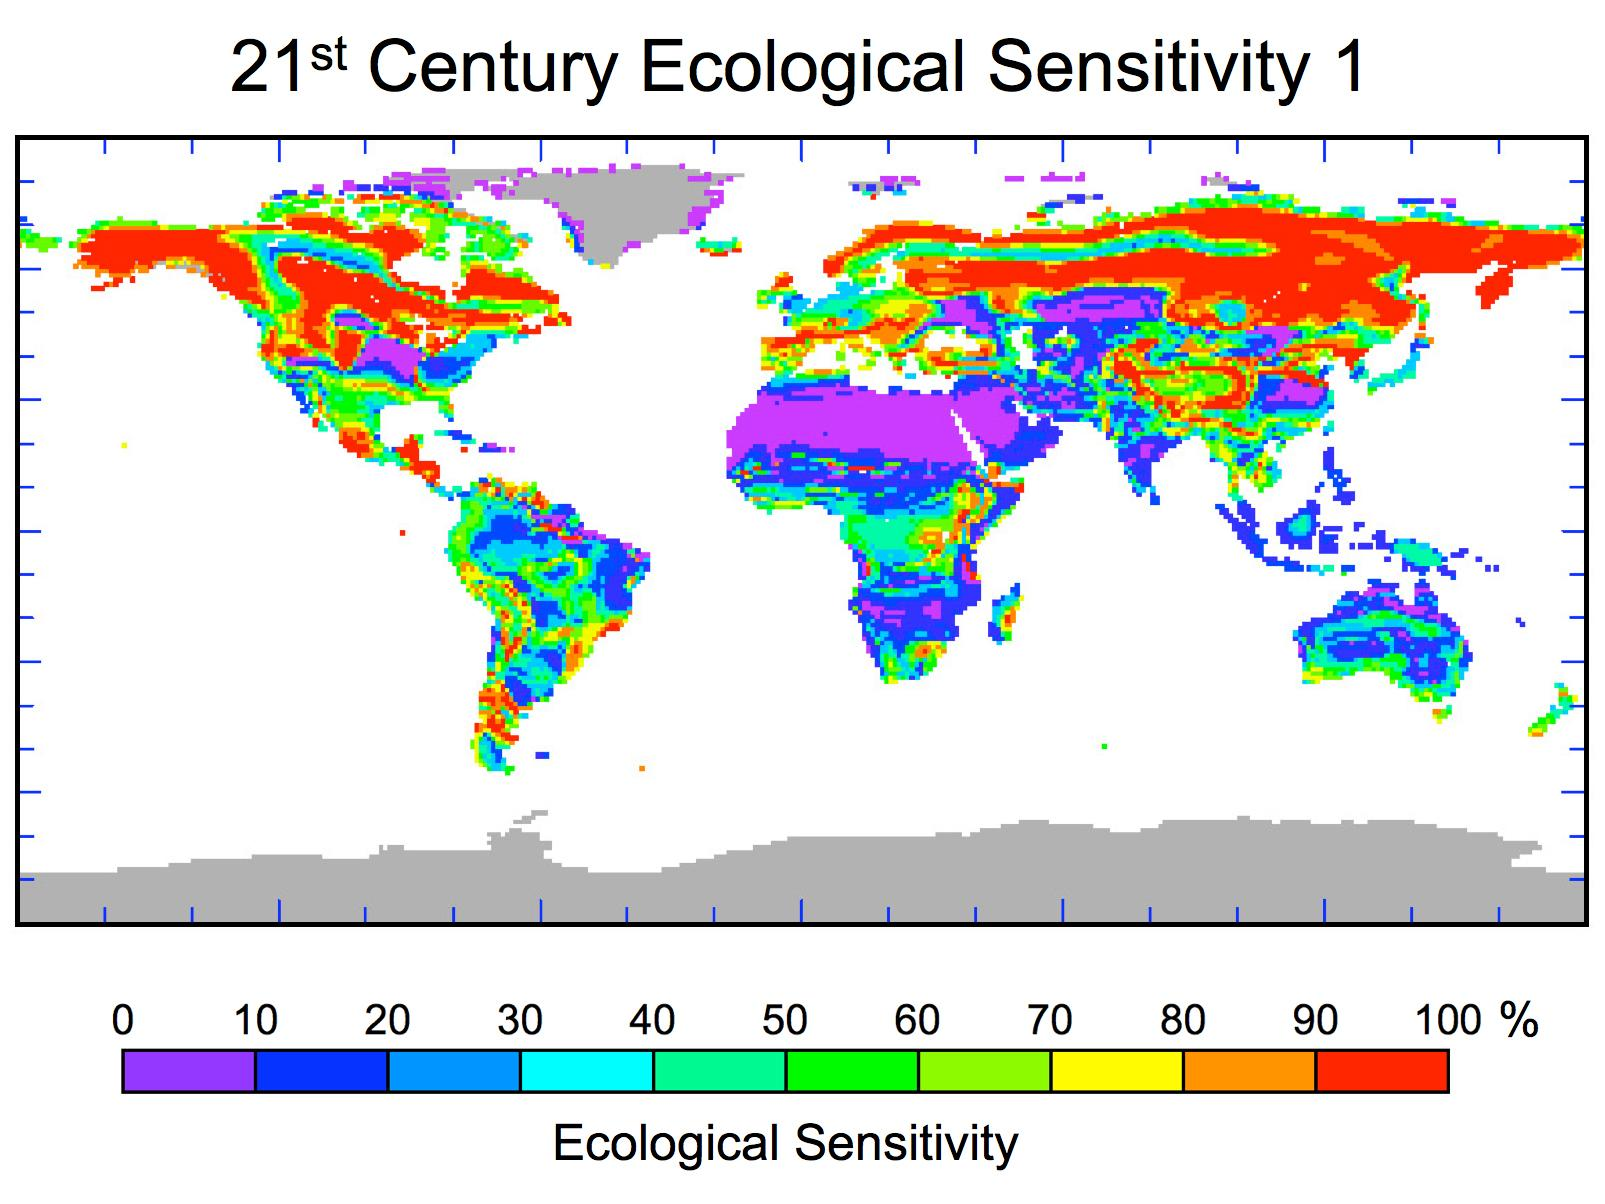 http://www.nasa.gov/images/content/610763main_climate20111214-43_full.jpg